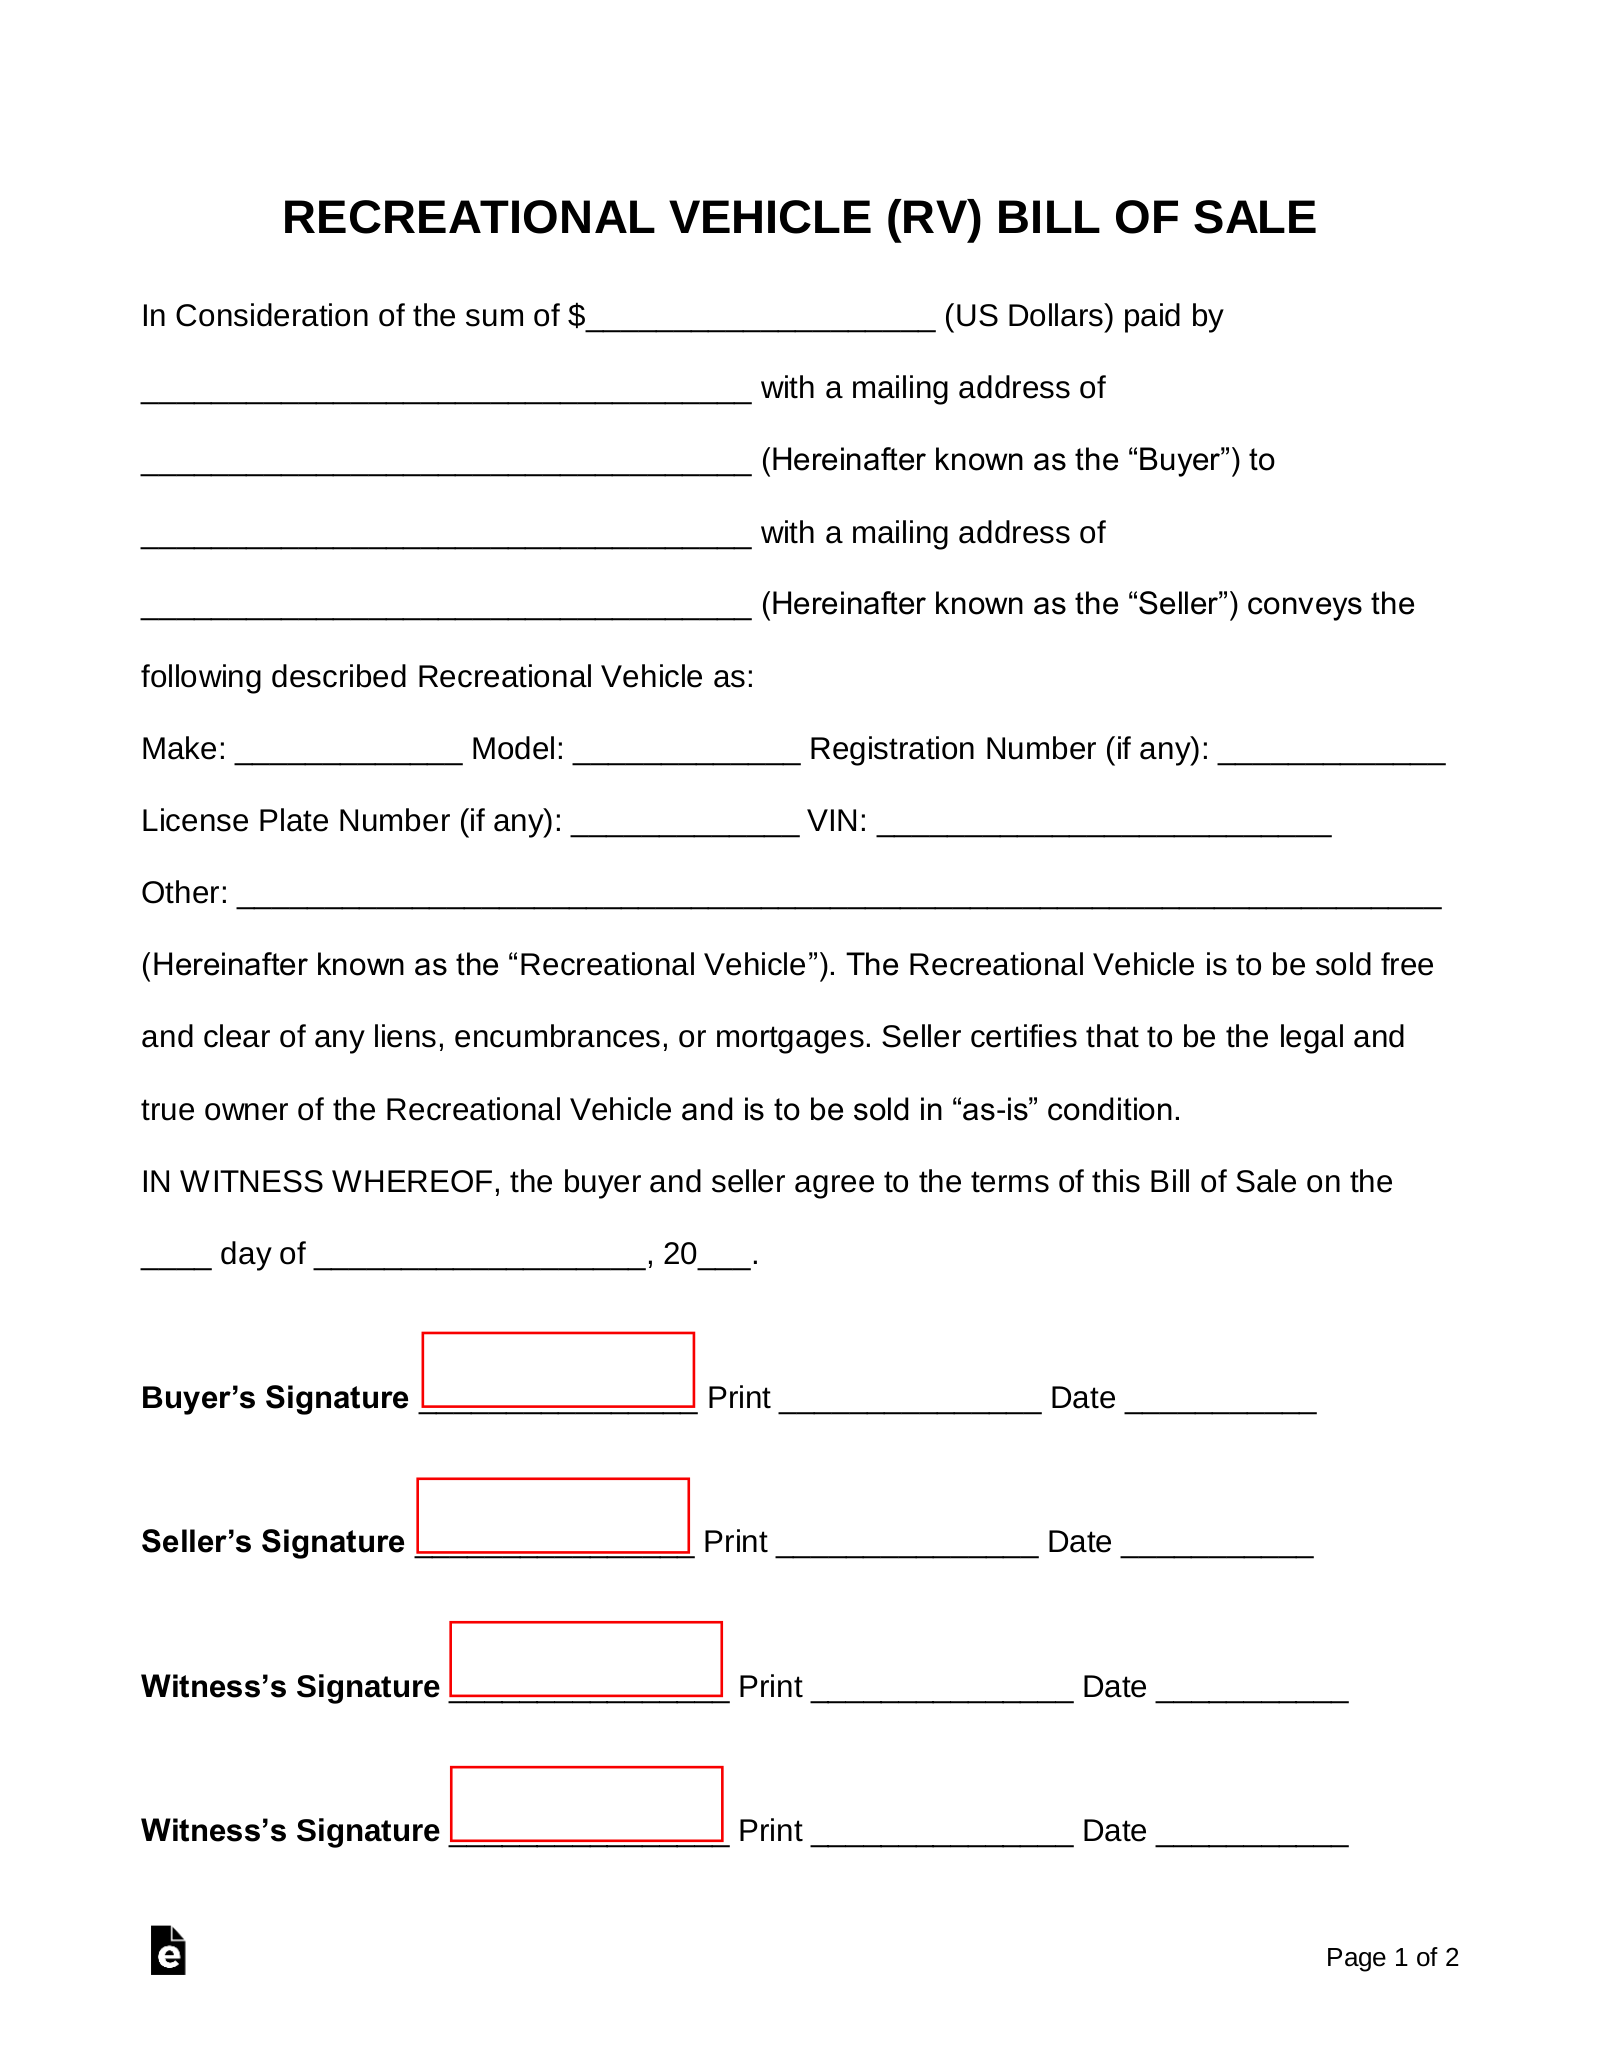 Free Recreational Vehicle Rv Bill Of Sale Form Word